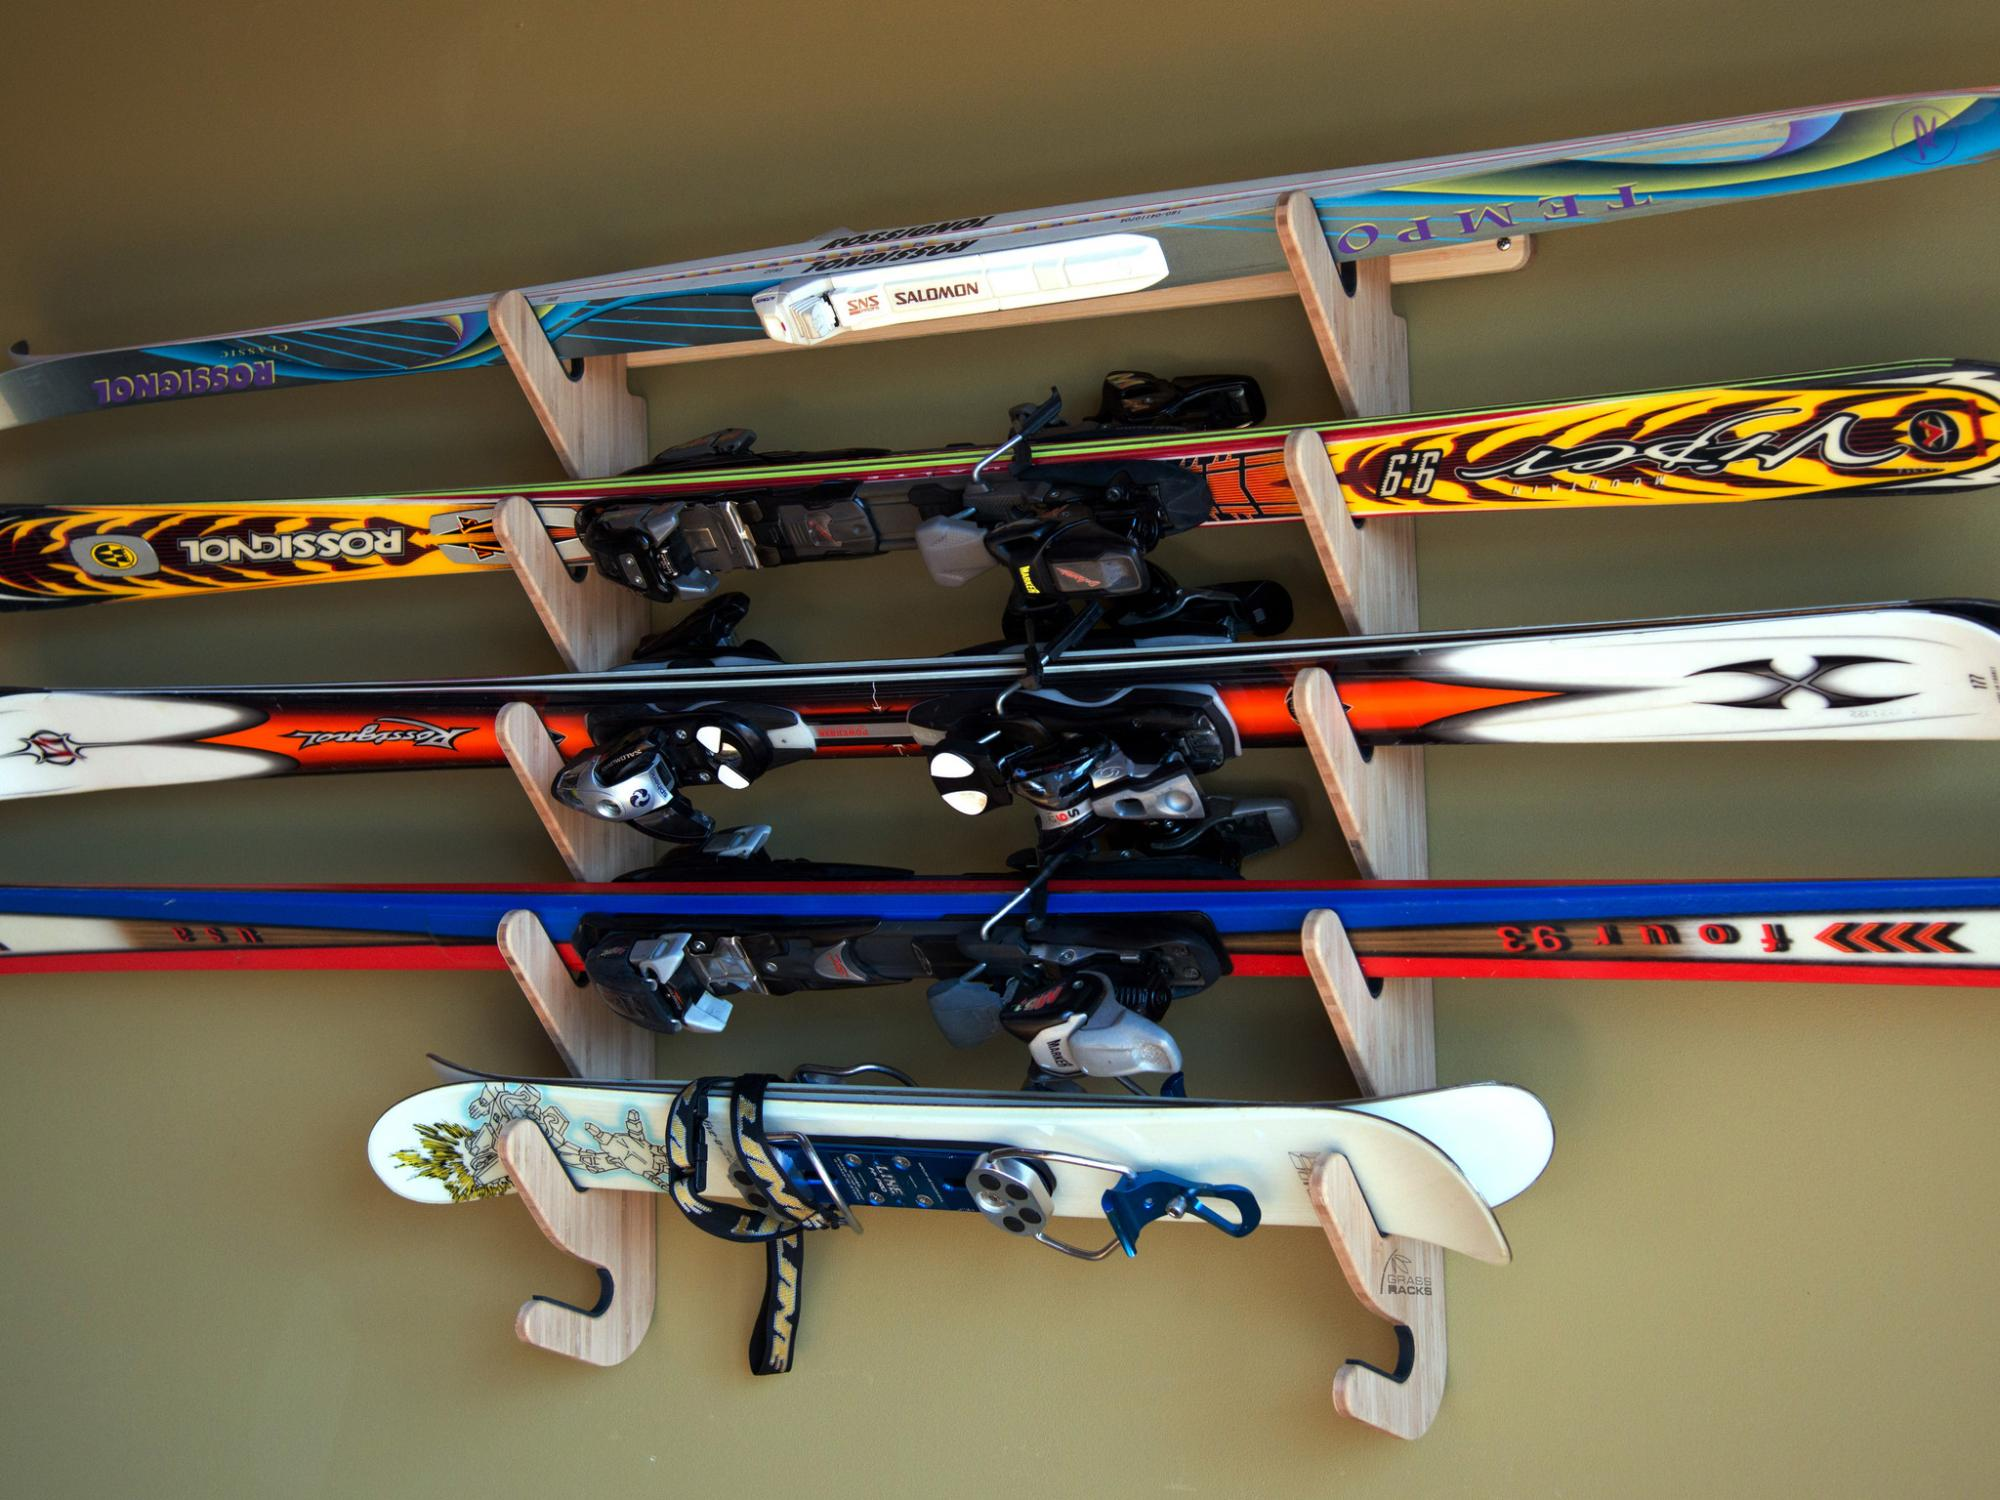 Storing Skis in a Garage